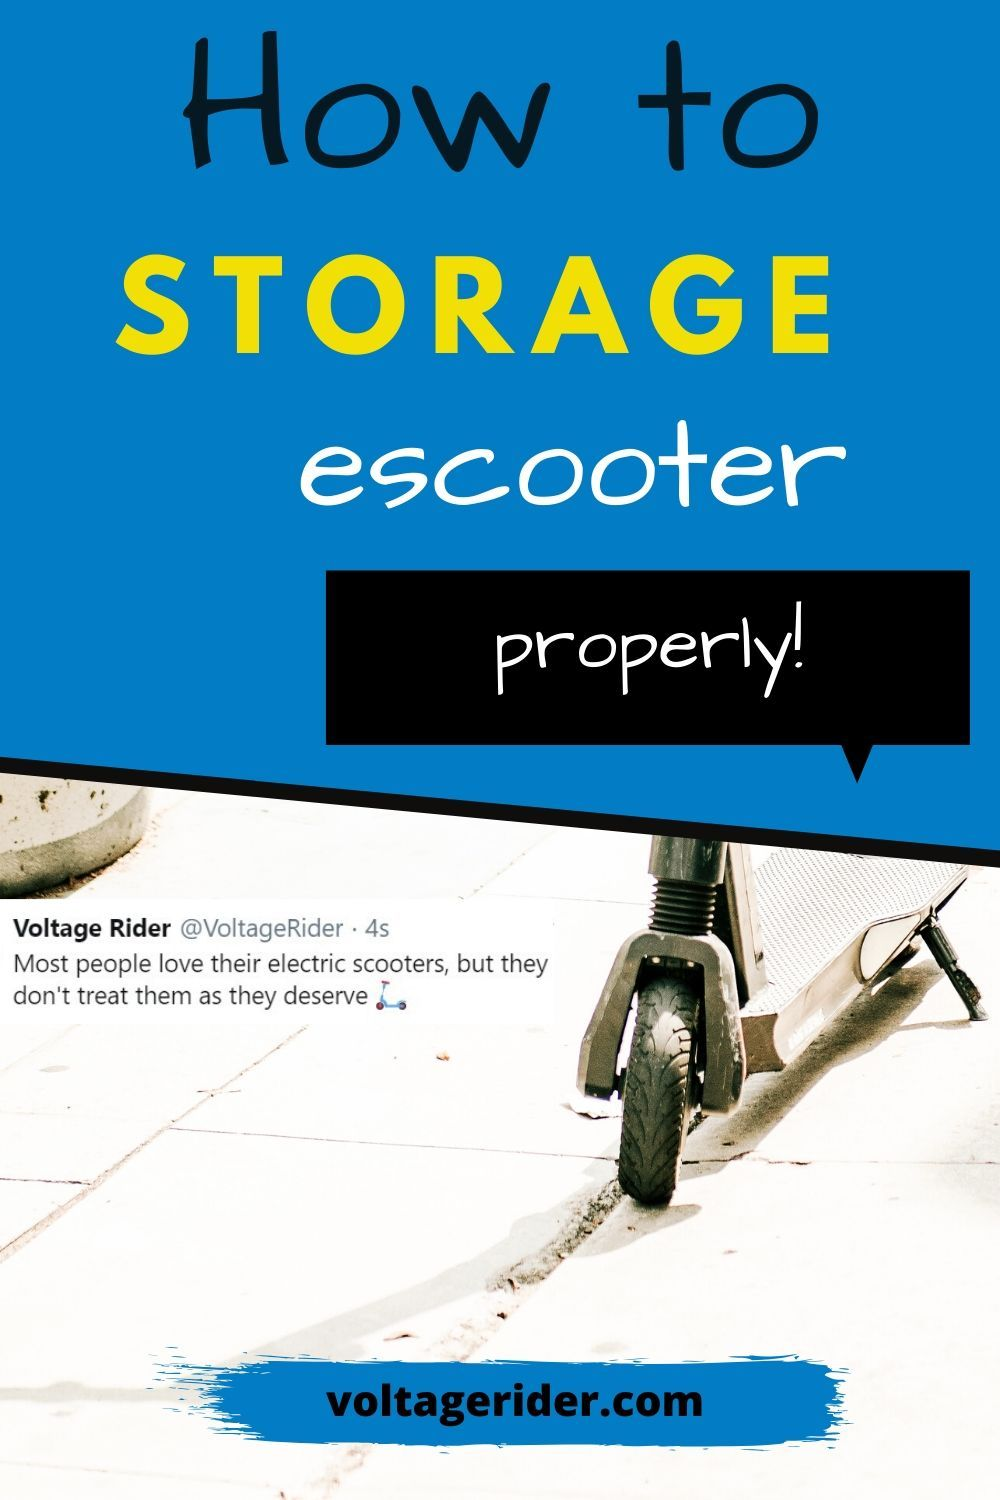 Take a look at this in-depth guide on how to storage electric scooter properly. If you want to put your escooter away for a while or storage your electric scooter over winter this is what you need to do. That way, you will save escooter battery and your electric scooter will last longer.  #electricscooter #escooter #electricscooters #escooters #voltagerider #electricscooterstorage #escooterstorage #storageescooter #storageelectricscooter #foldingescooter #urbanmobility